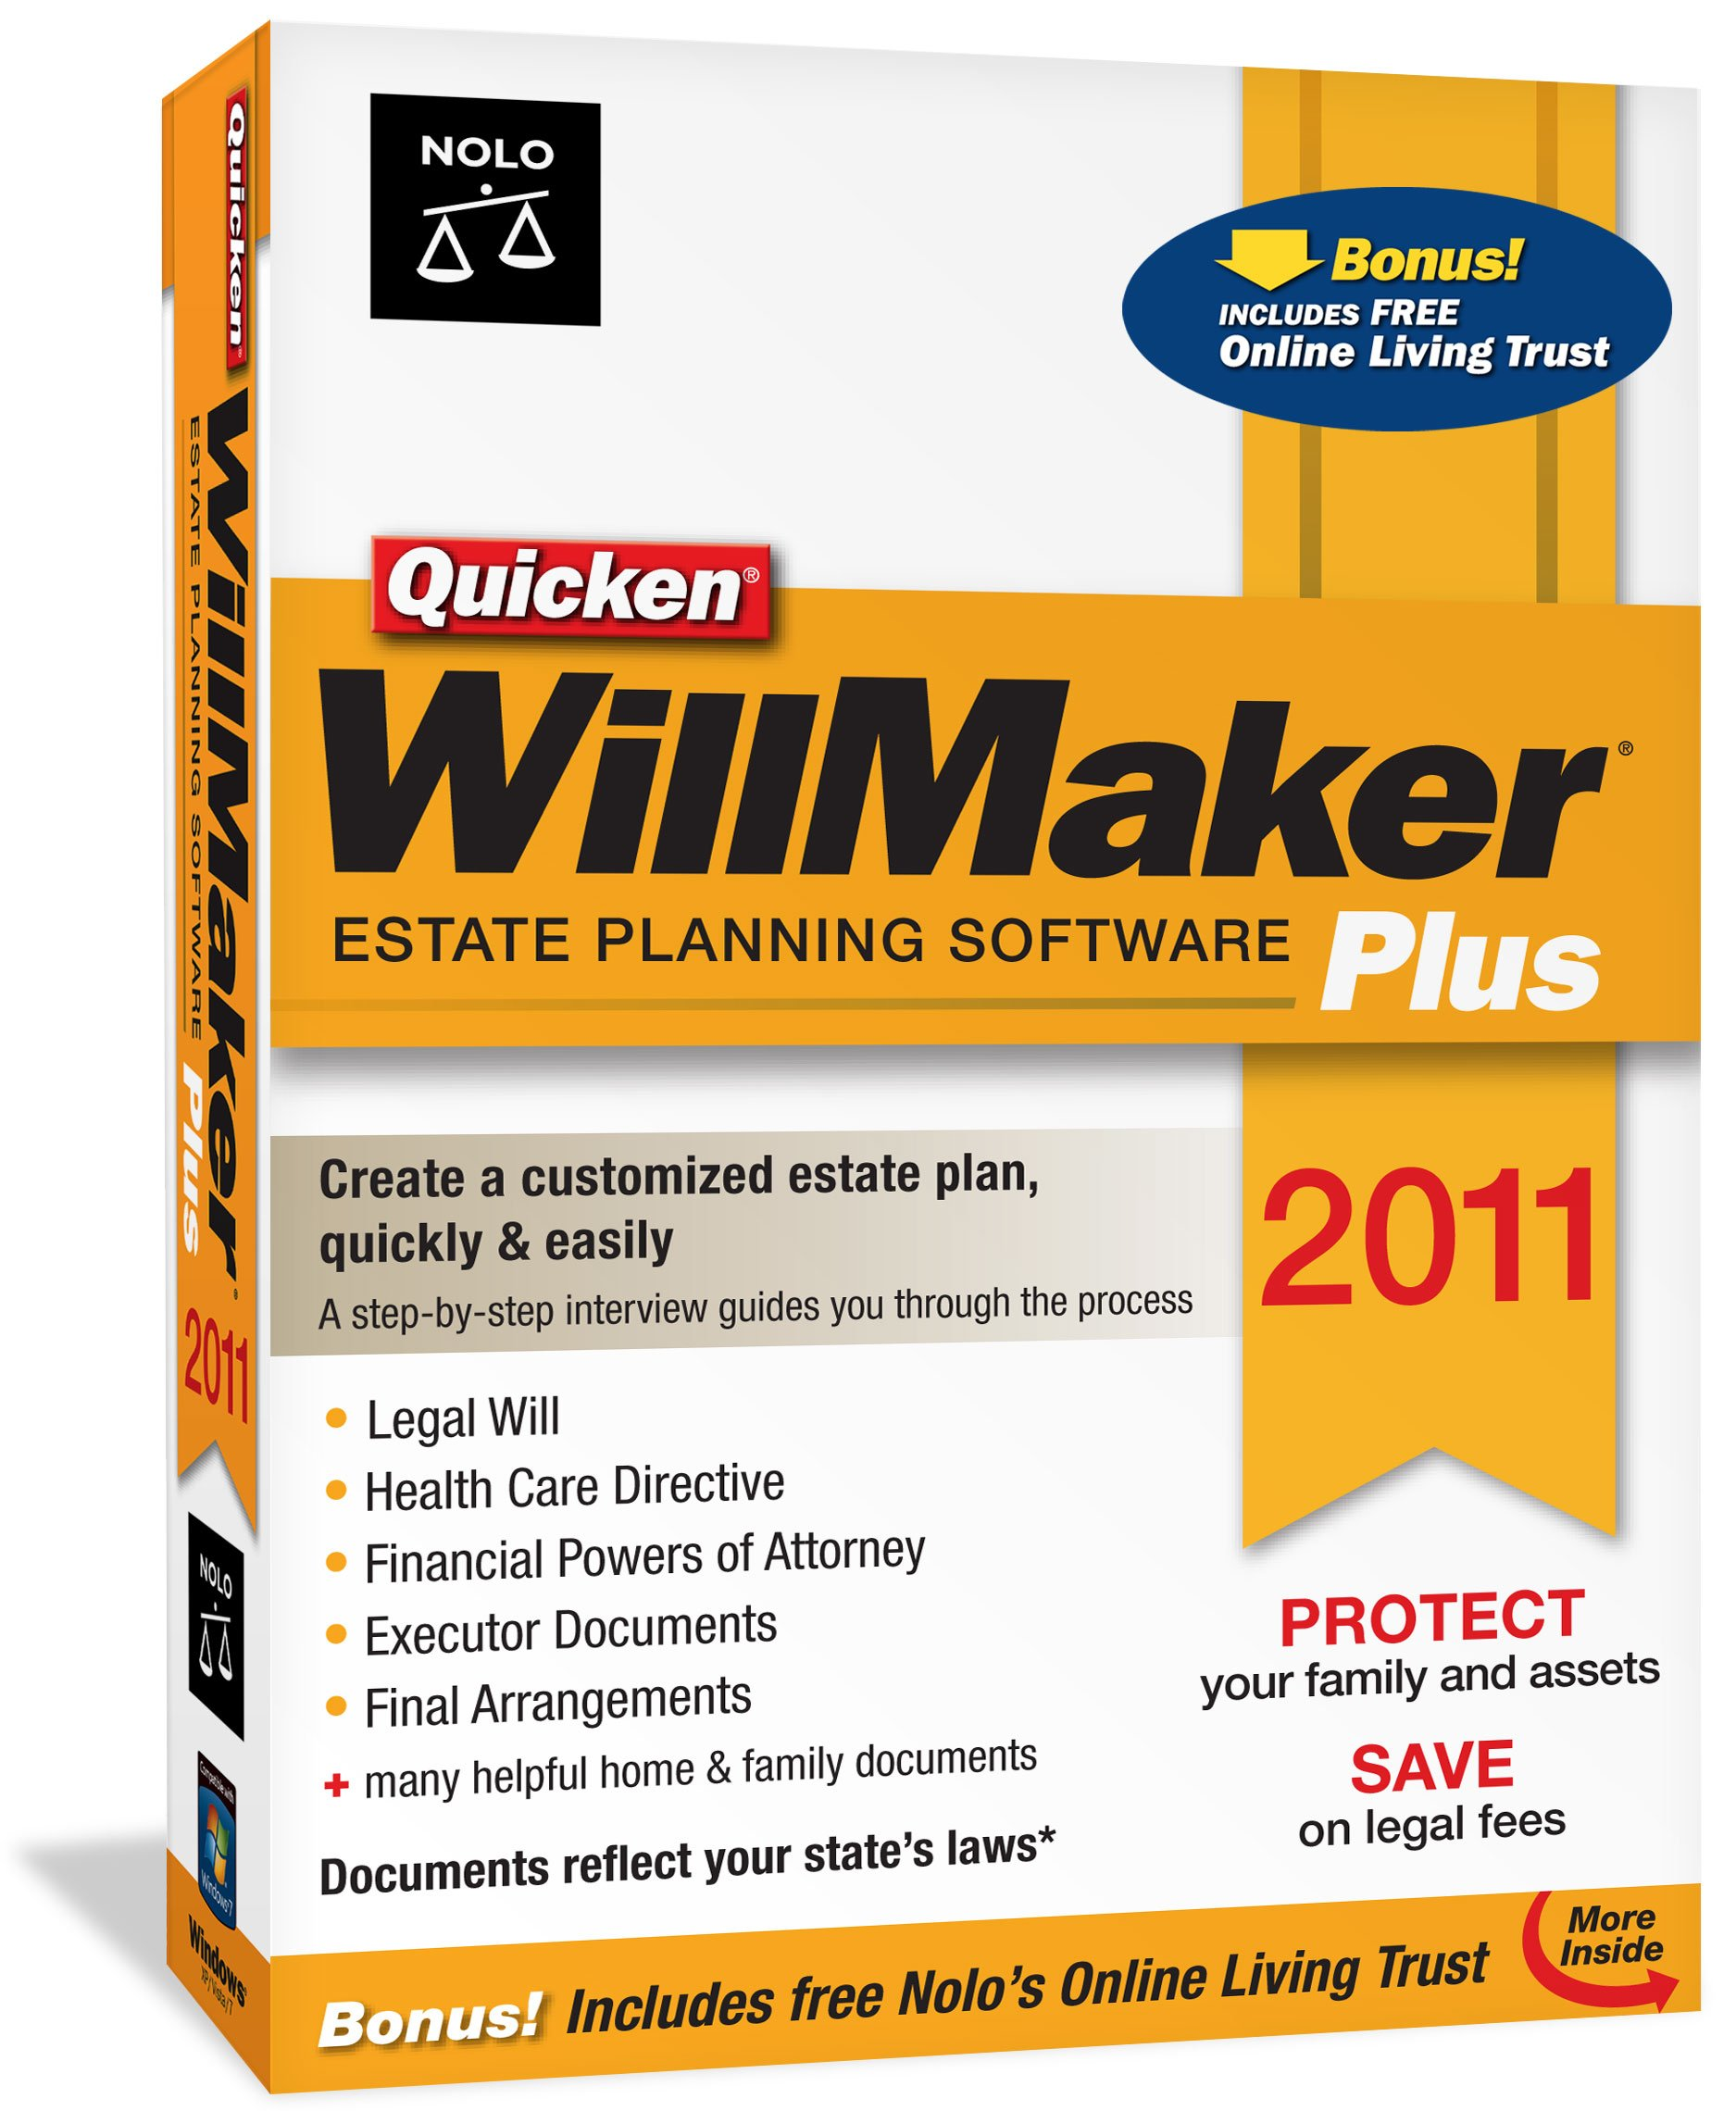 Quicken WillMaker Plus 2011 [Old Version] by NOLO